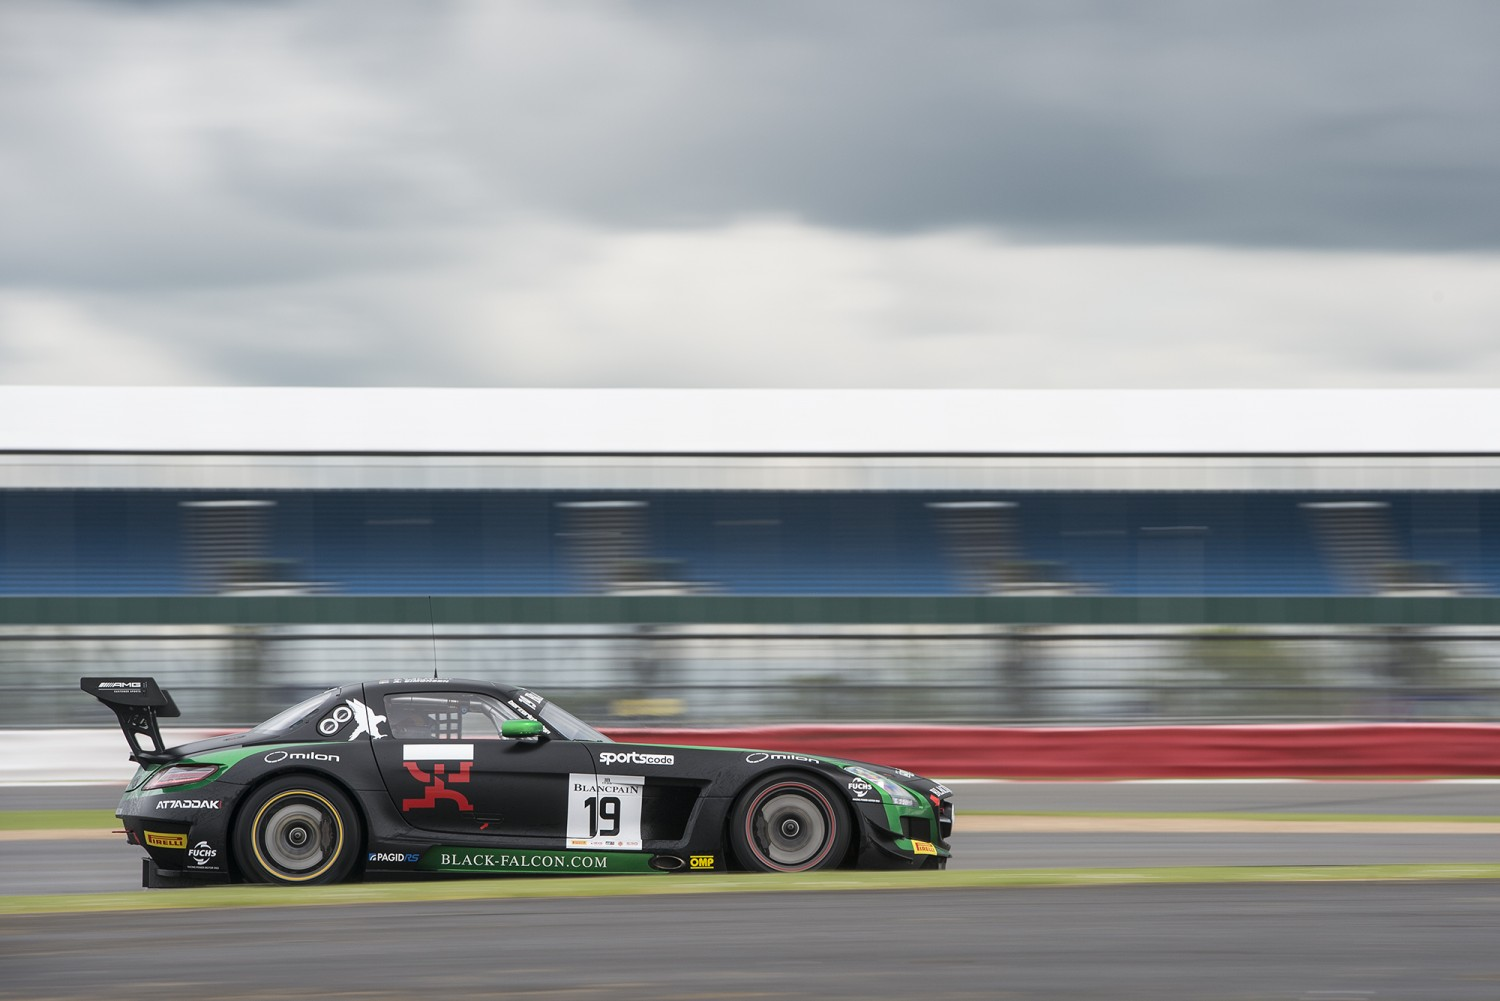 Team Black Falcon to race three cars at upcoming Total 24 hours of Spa